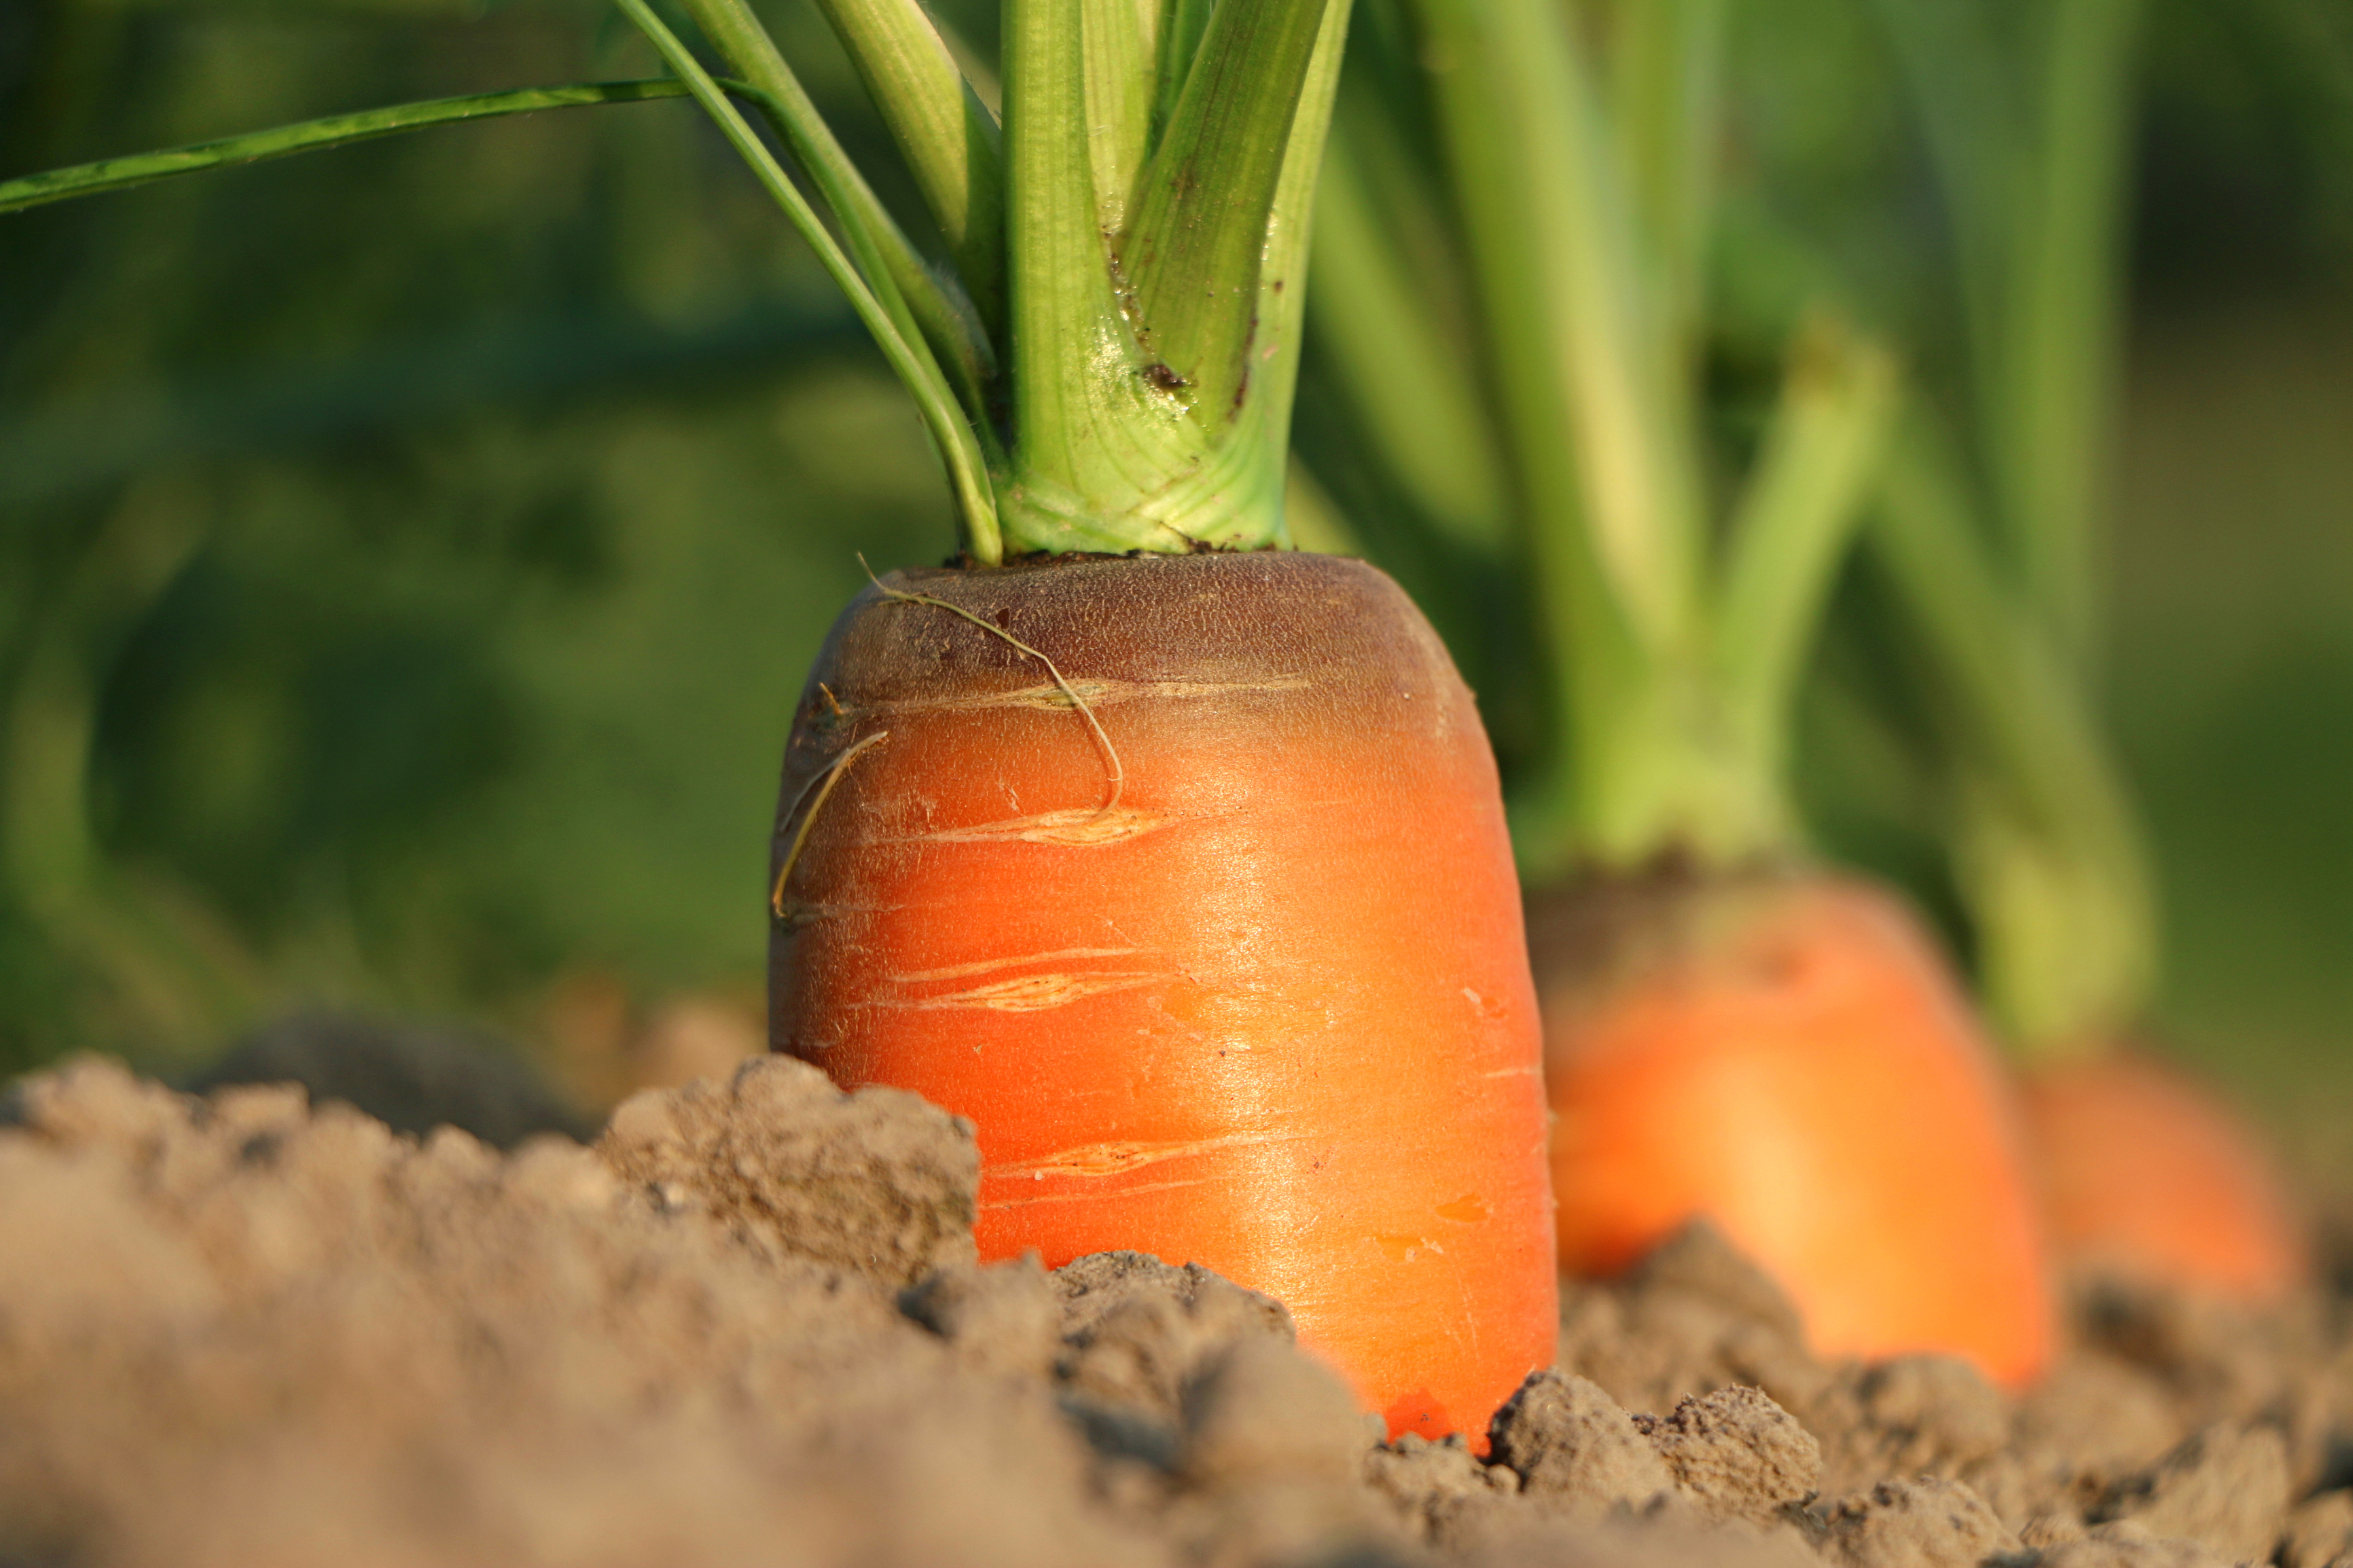 Carrot growth, Bed, Carrot, Green, Ground, HQ Photo